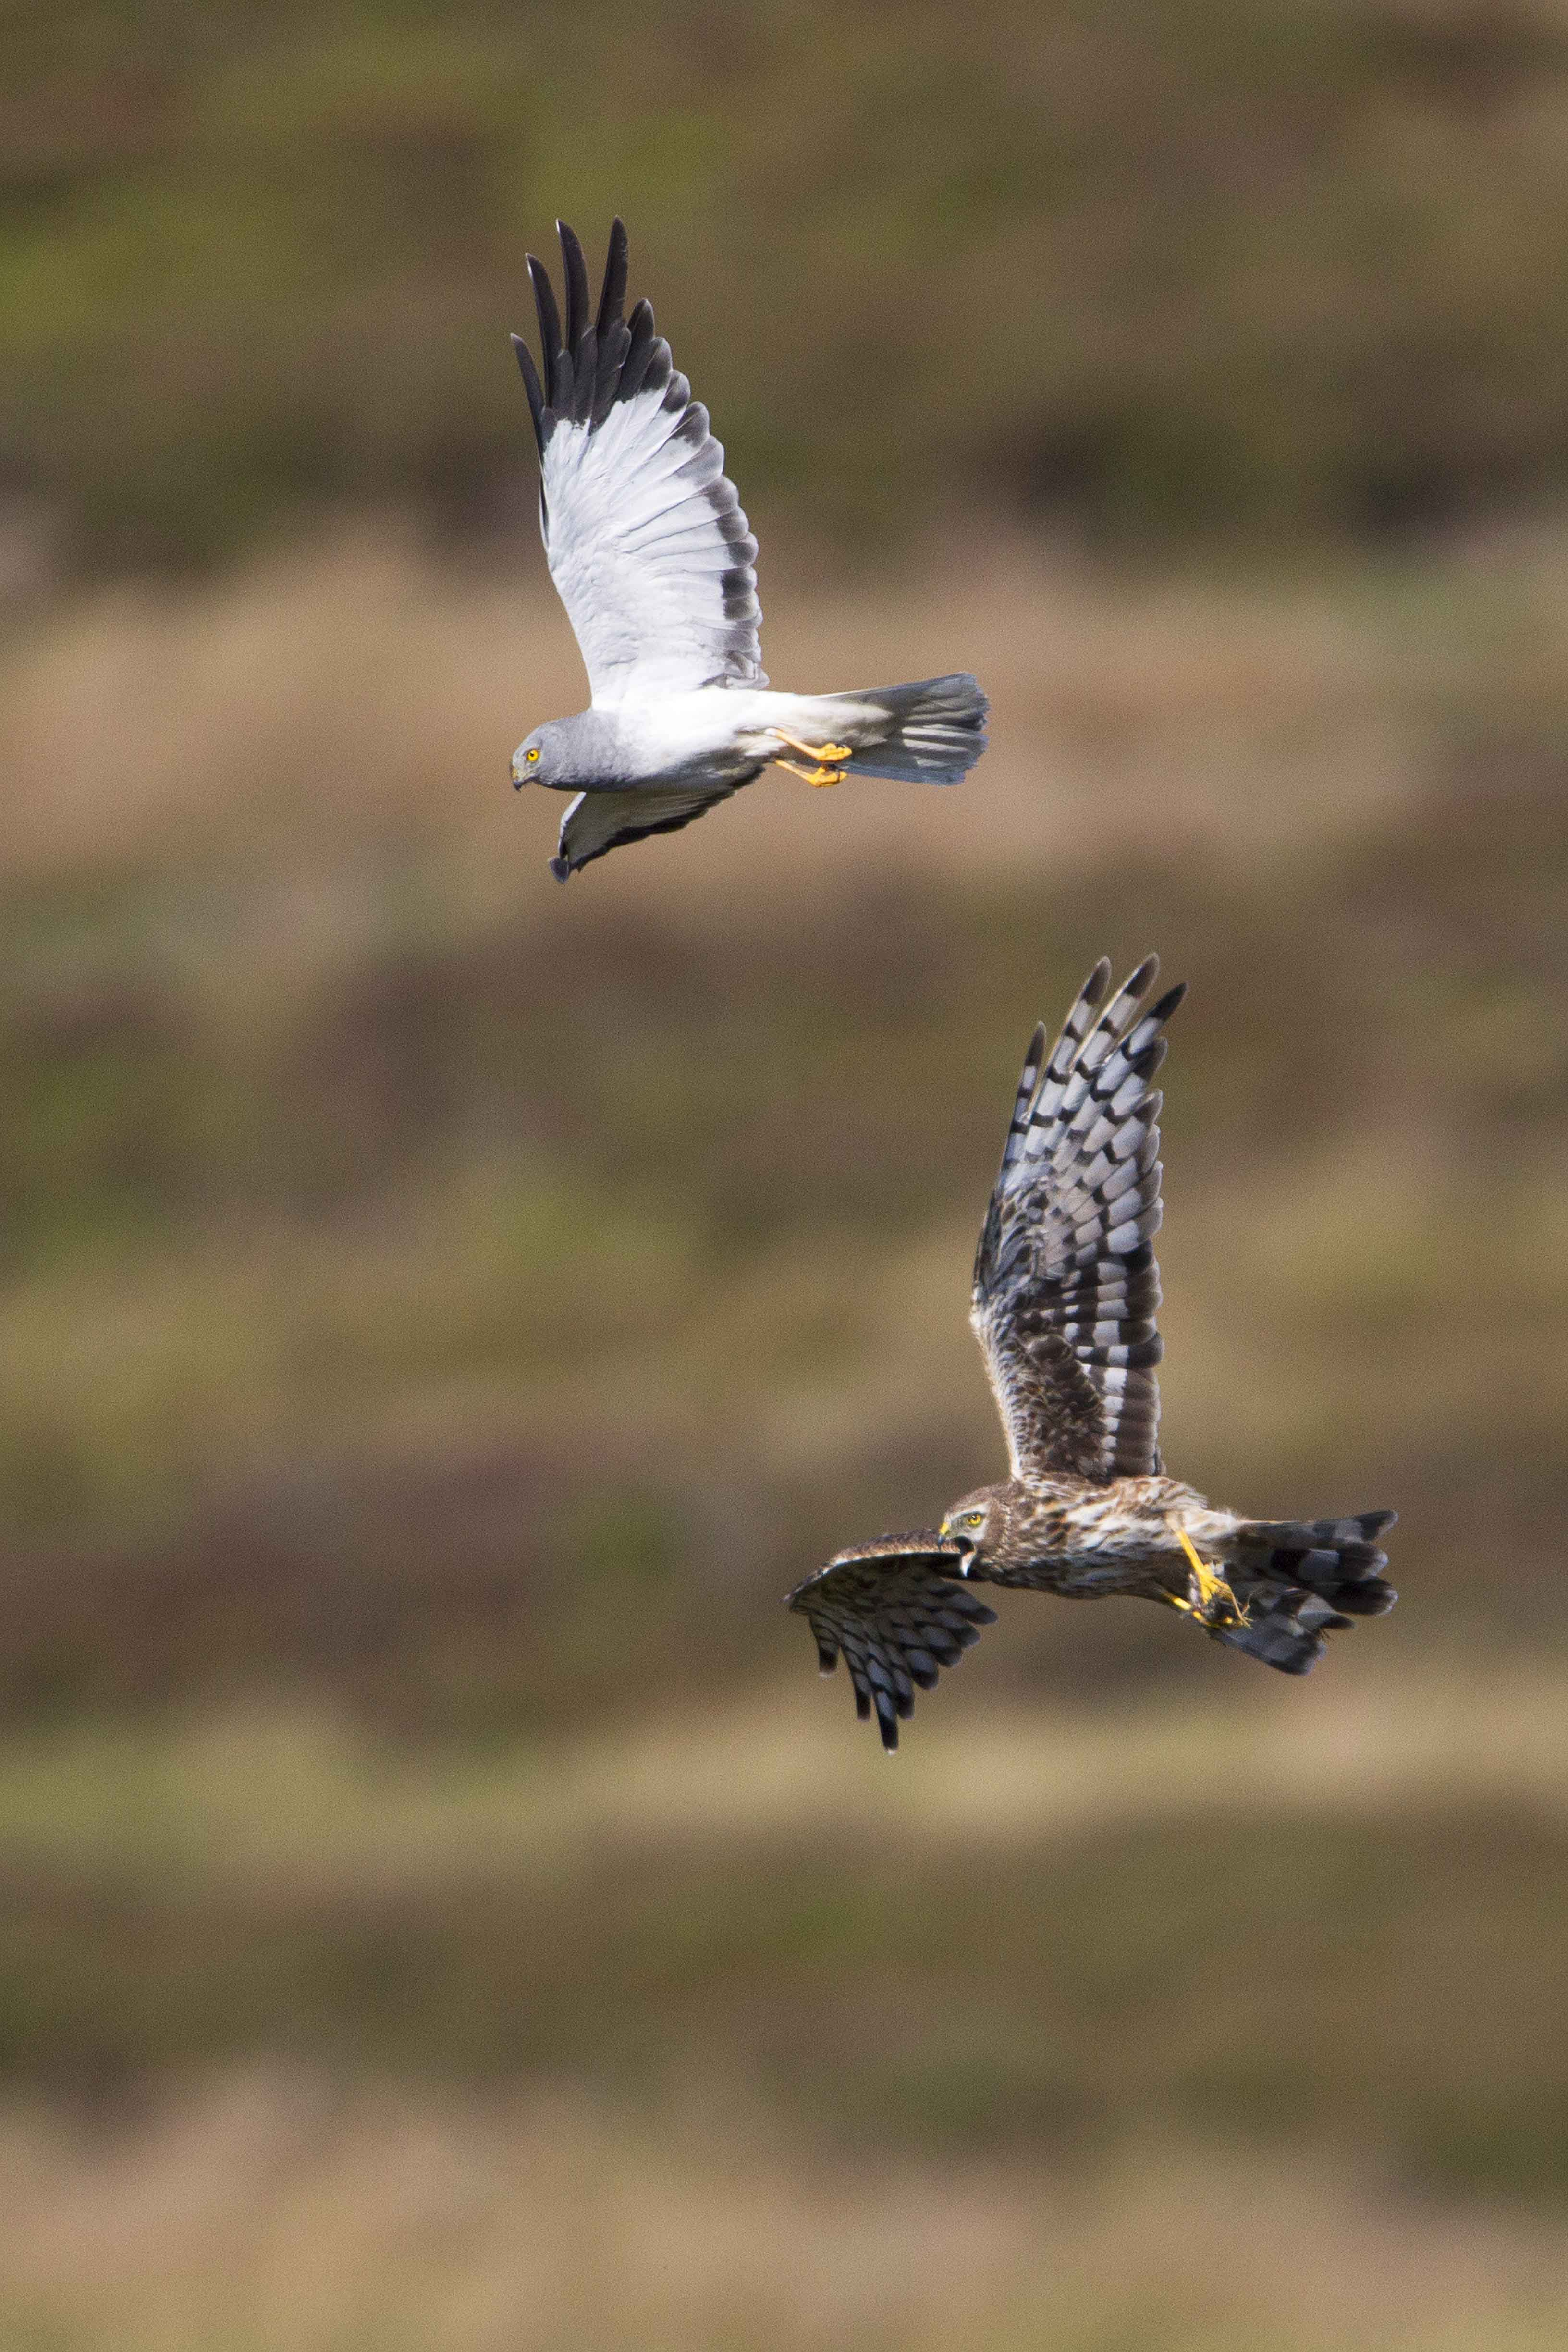 Hen-Harrier-male-and-female-food-pass-H8-2020-Keith-Offord-lo-roXBSZL.jpg